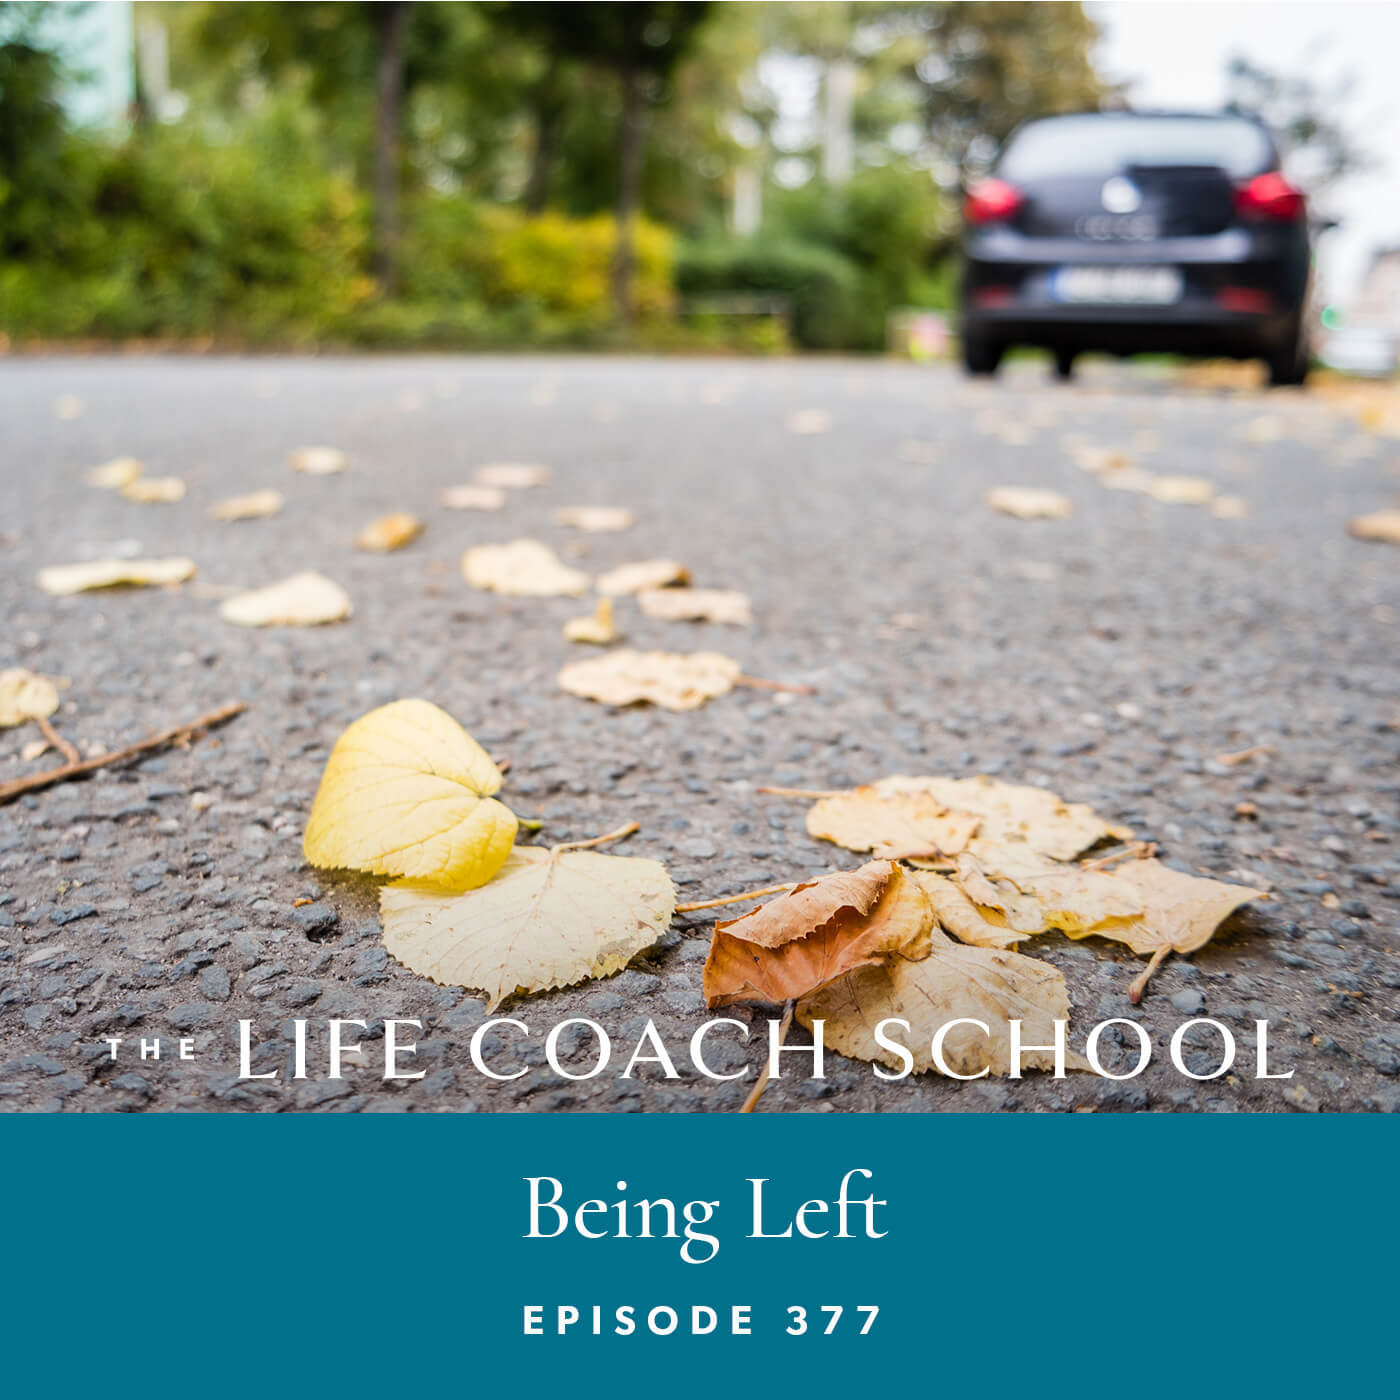 The Life Coach School Podcast with Brooke Castillo | Being Left